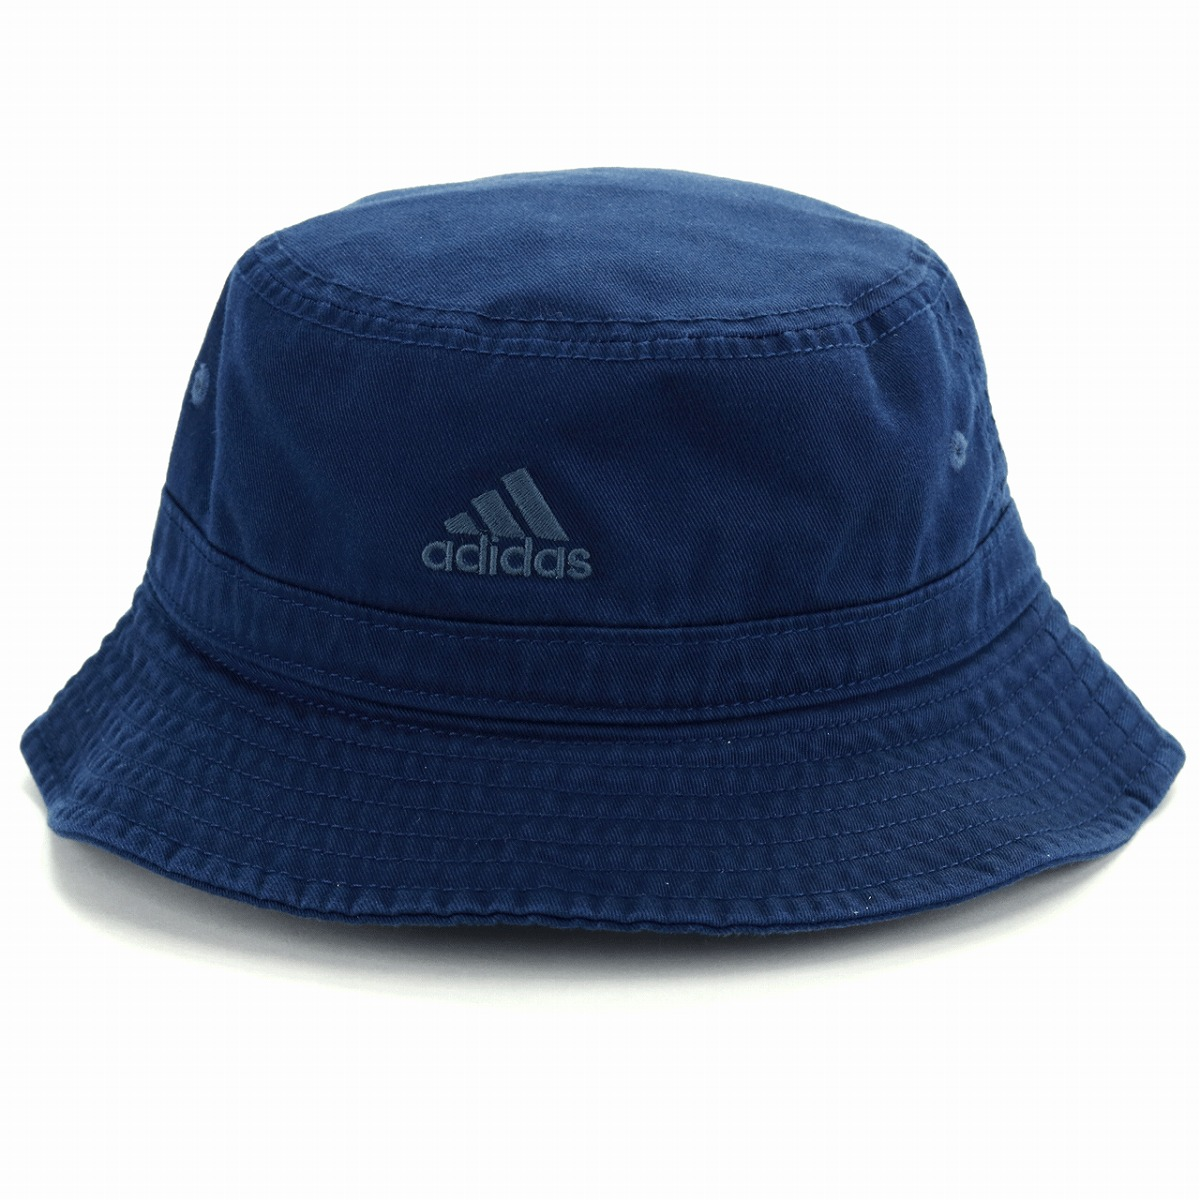 Safari hat men adidas hat Adidas Sakha re-hat awning hat man and woman  combined ... 72ffcc98b5d